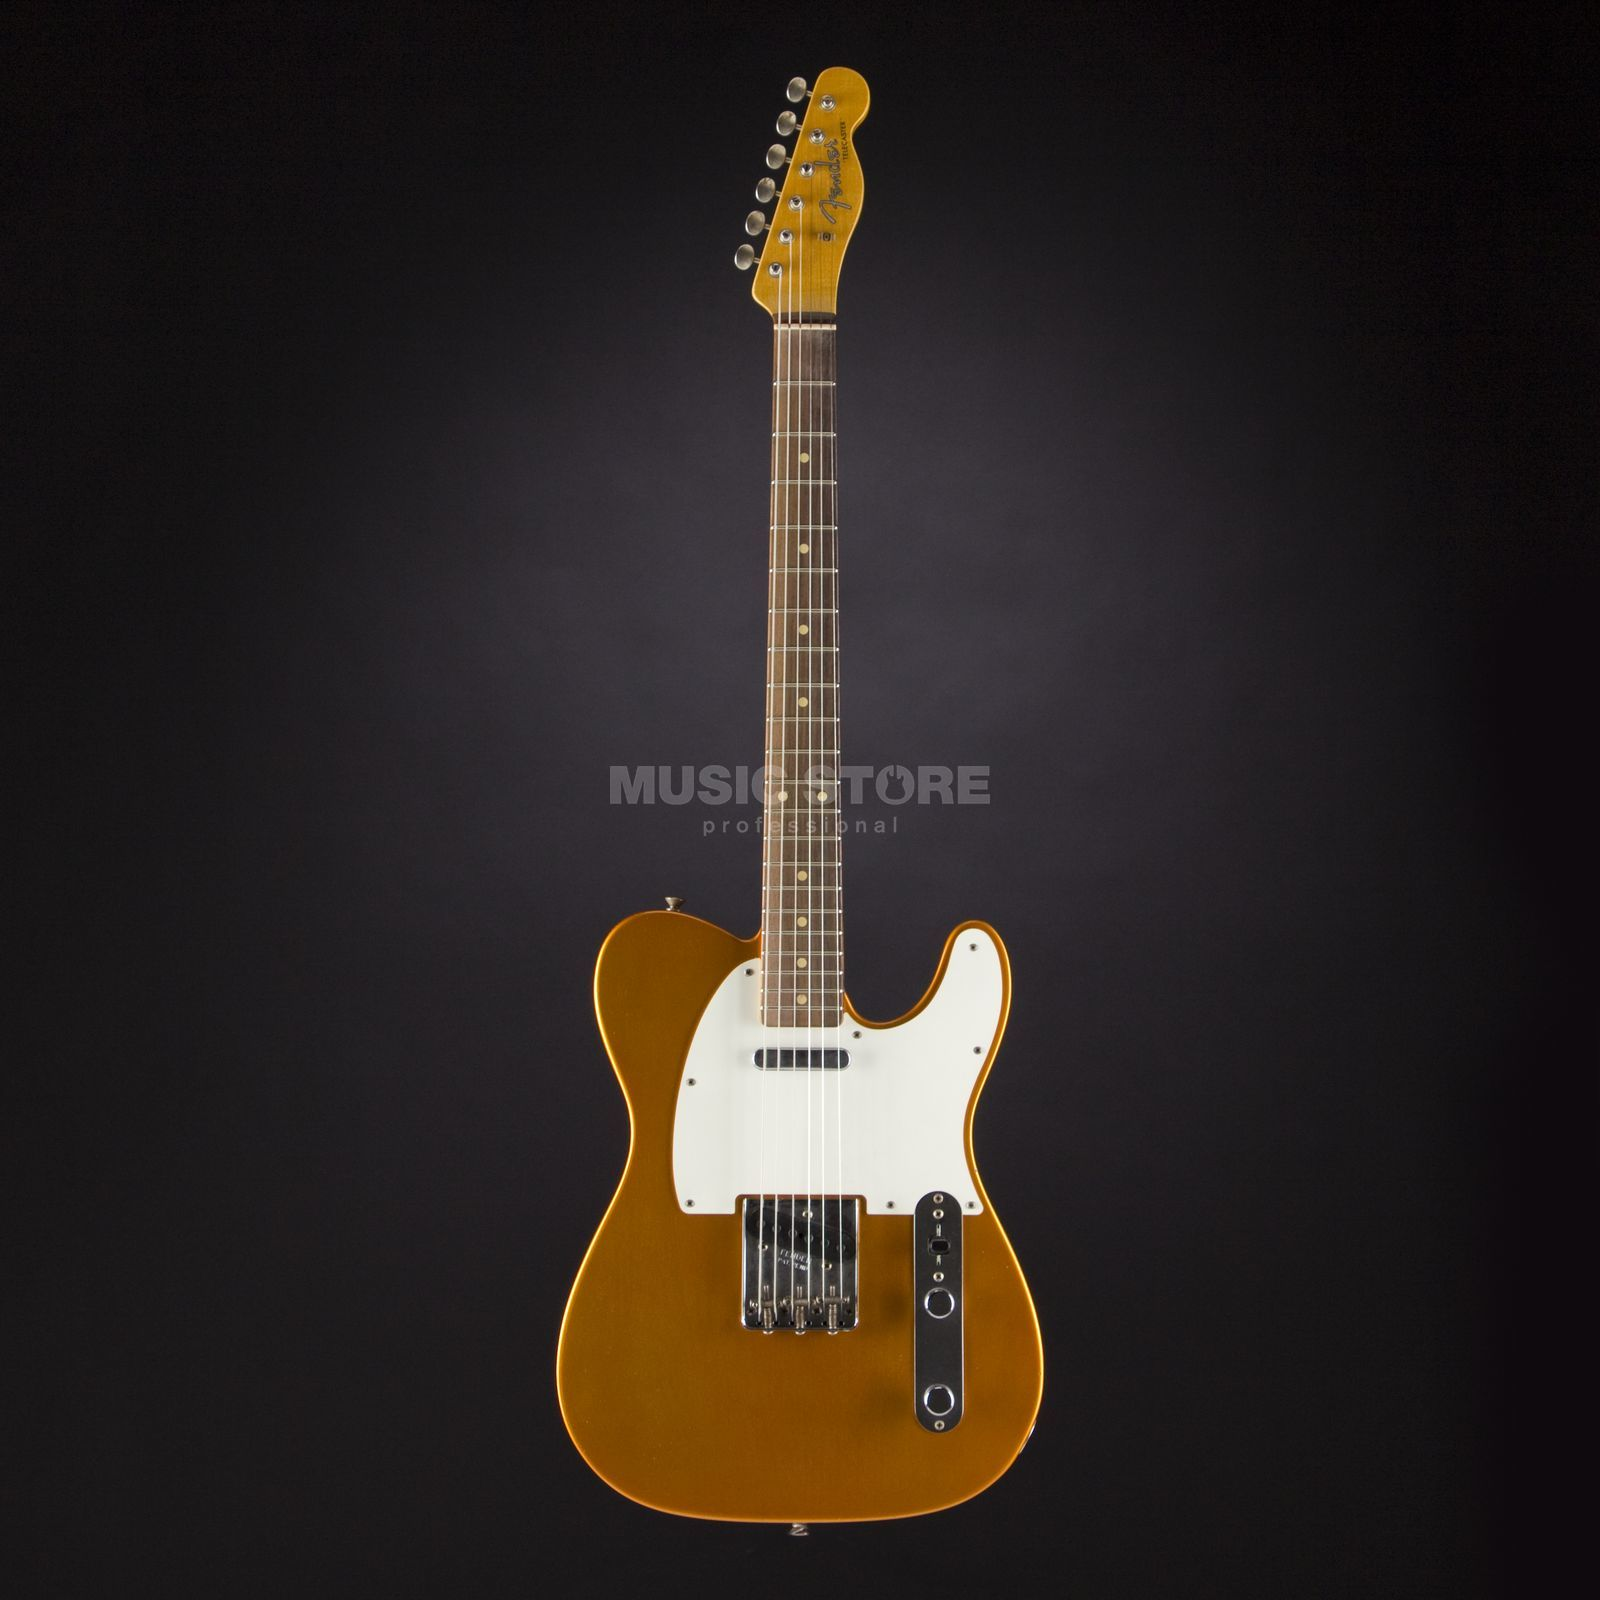 Fender 1959 Journeyman Relic Telecaster Faded Tangerine Candy #CZ525795 Product Image